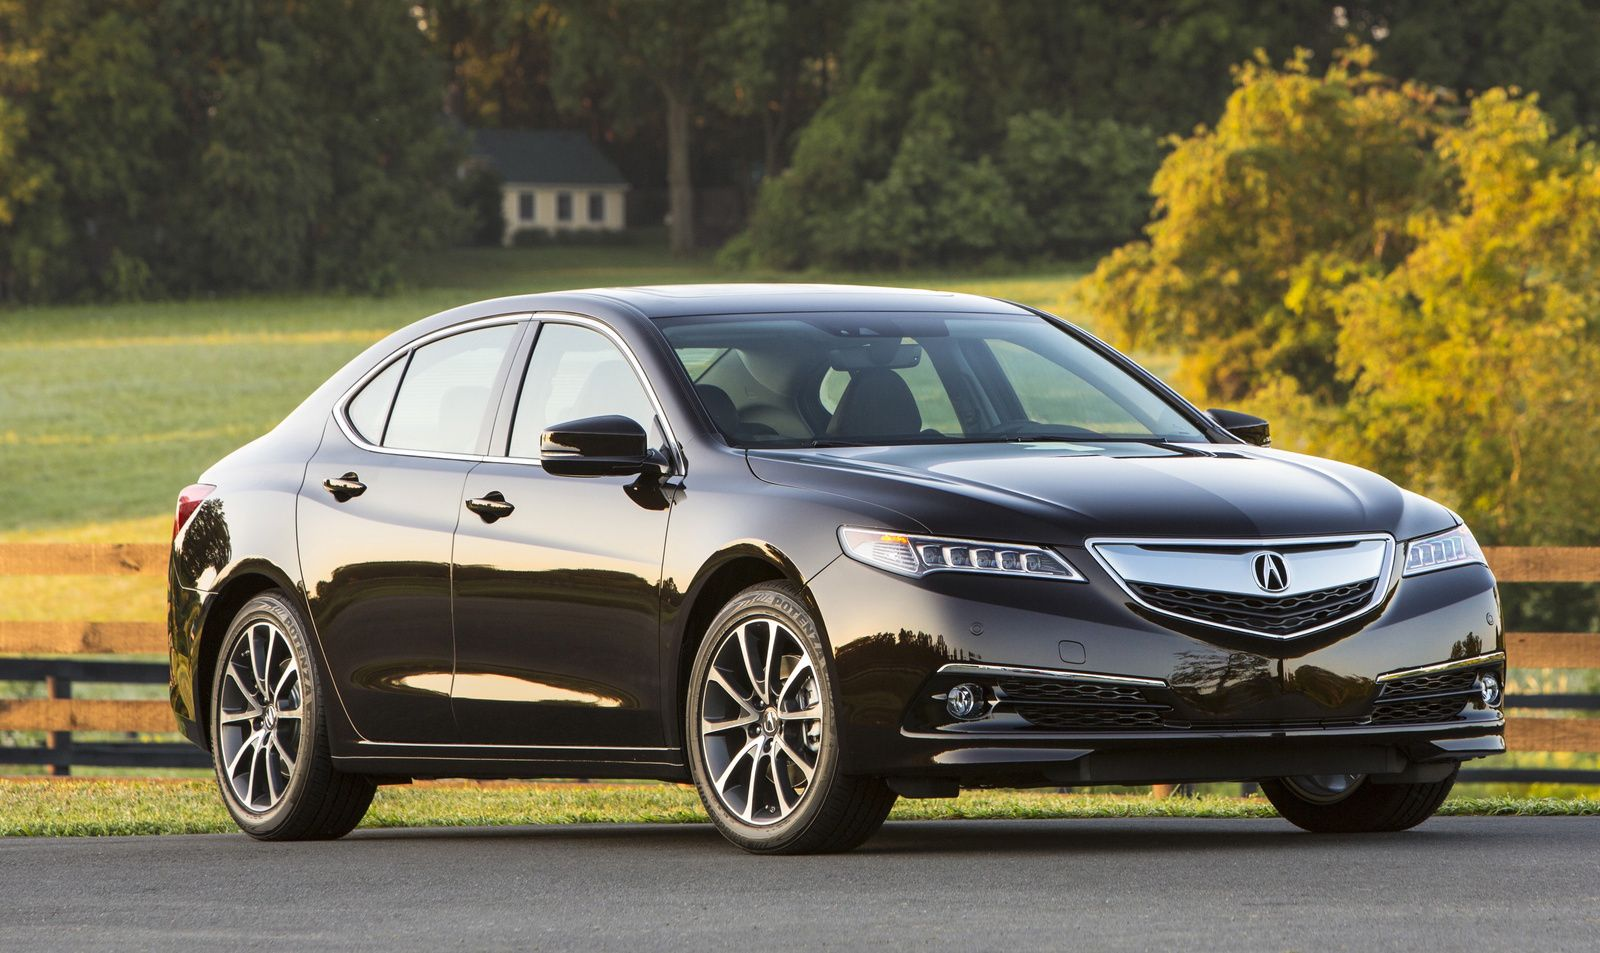 The acura tlx is a mid size luxury sedan produced by acura first acura tlx was tlx prototype sedan as a substitute for the acura tl and acura tsx sedans